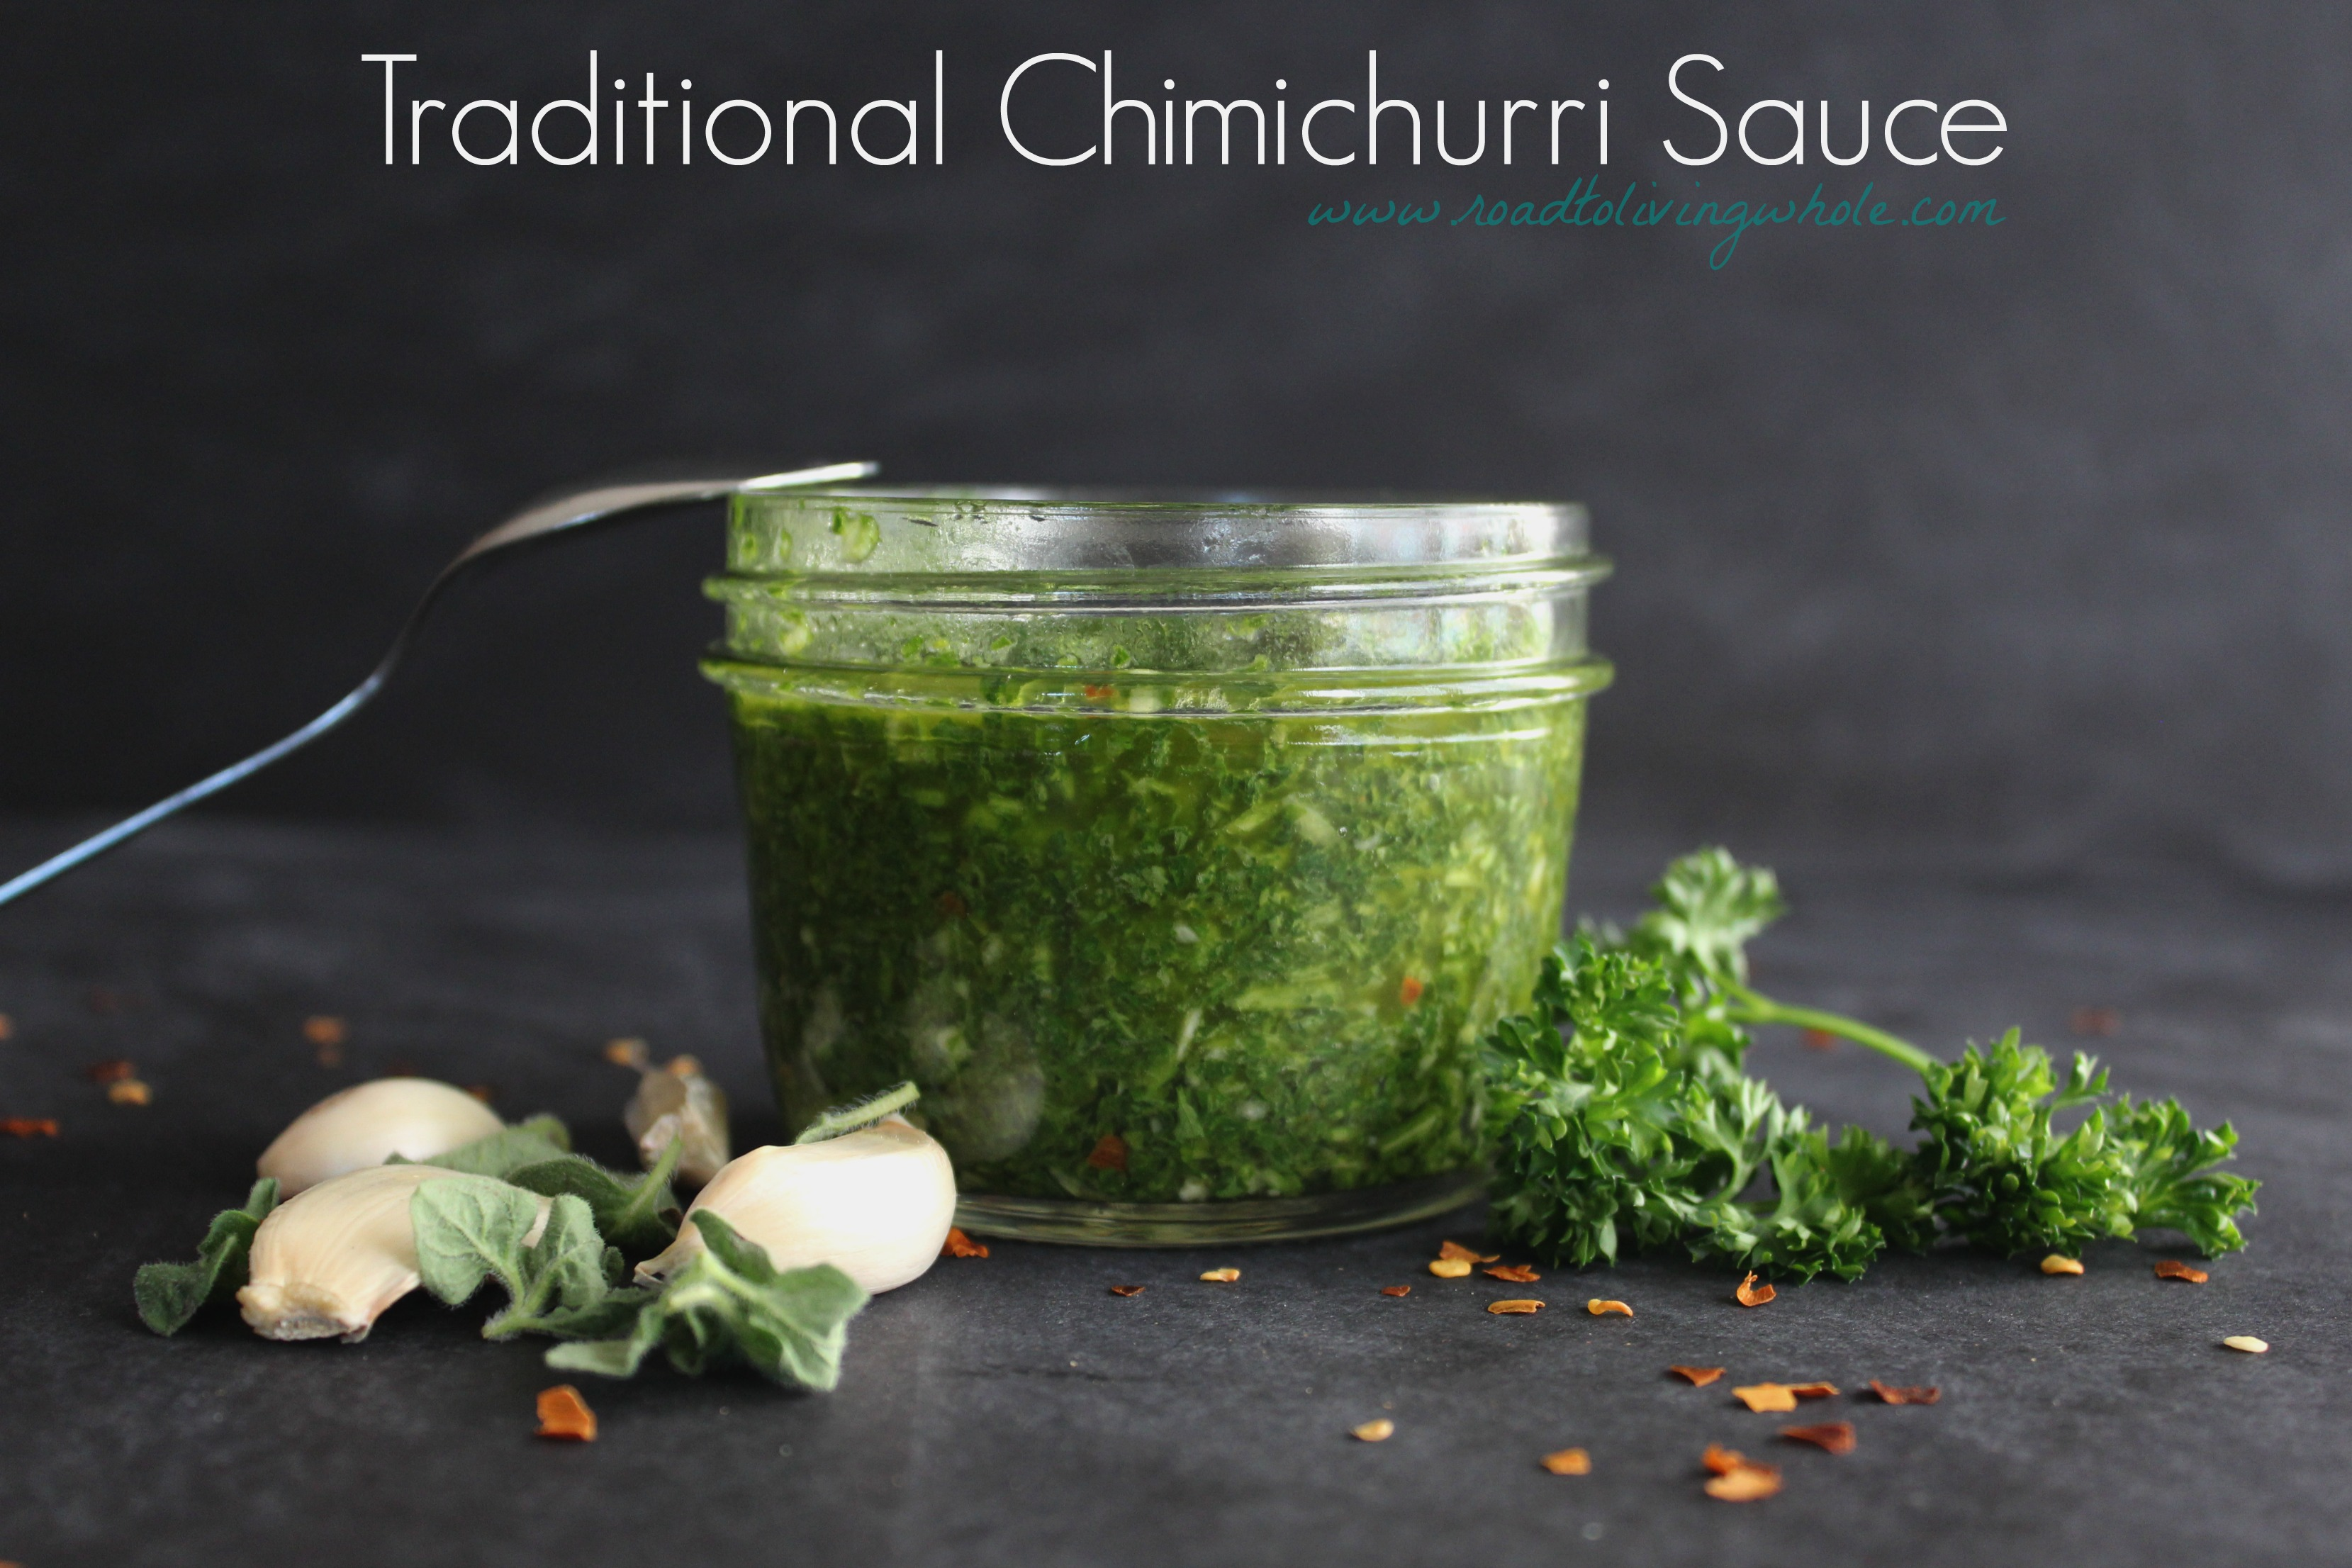 traditional chimichurri sauce